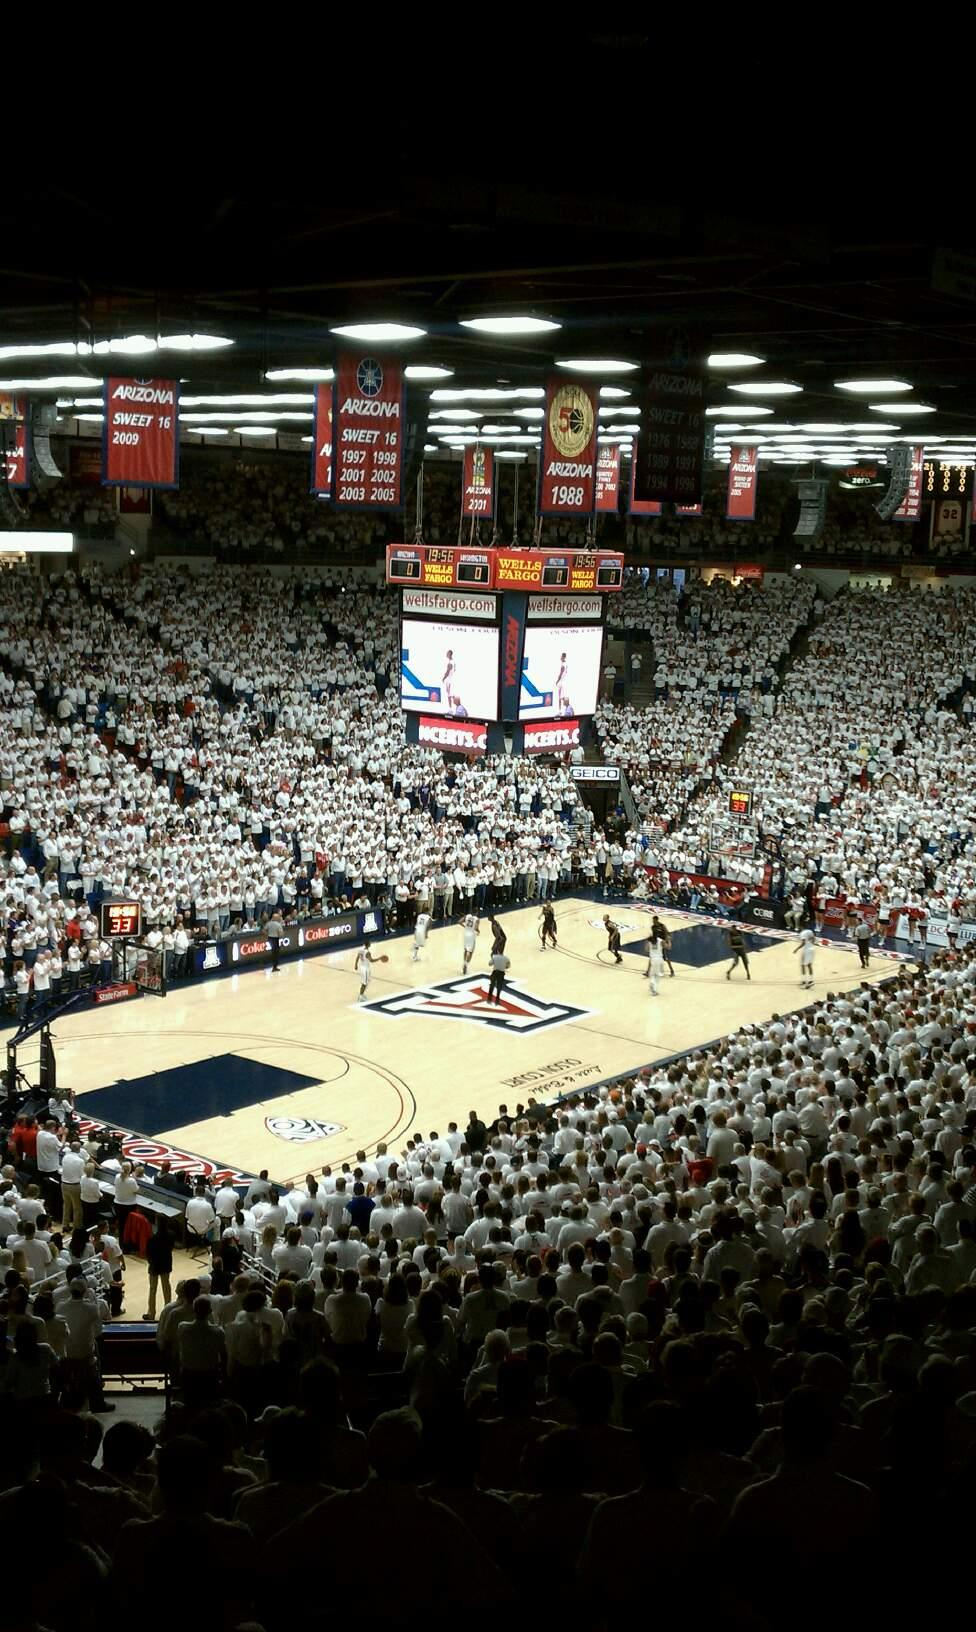 McKale Center Section 104 Row 33 Seat 5